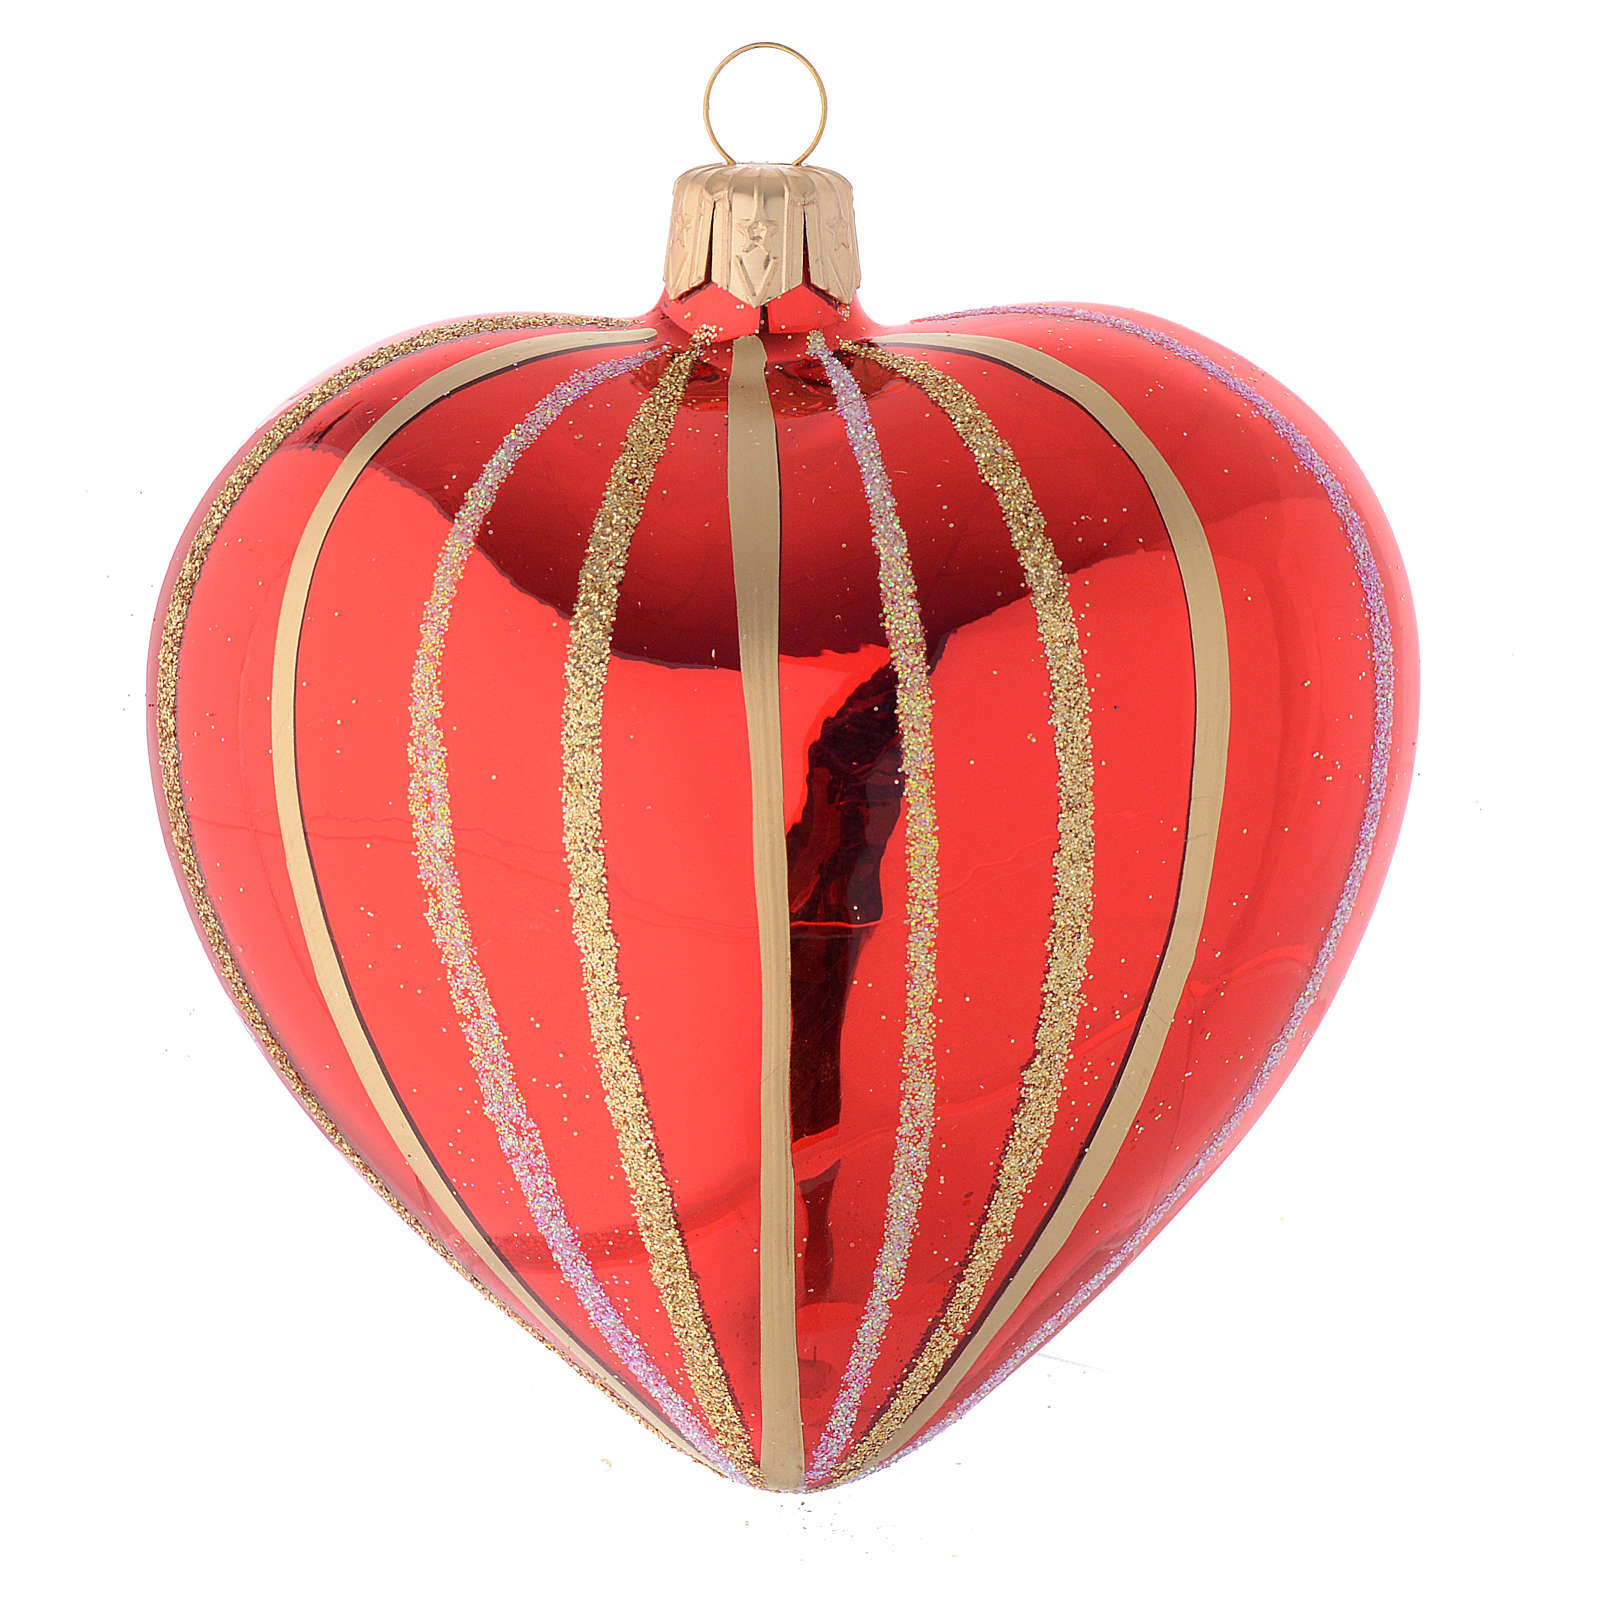 Heart Shaped Bauble in red and gold blown glass 100mm 4